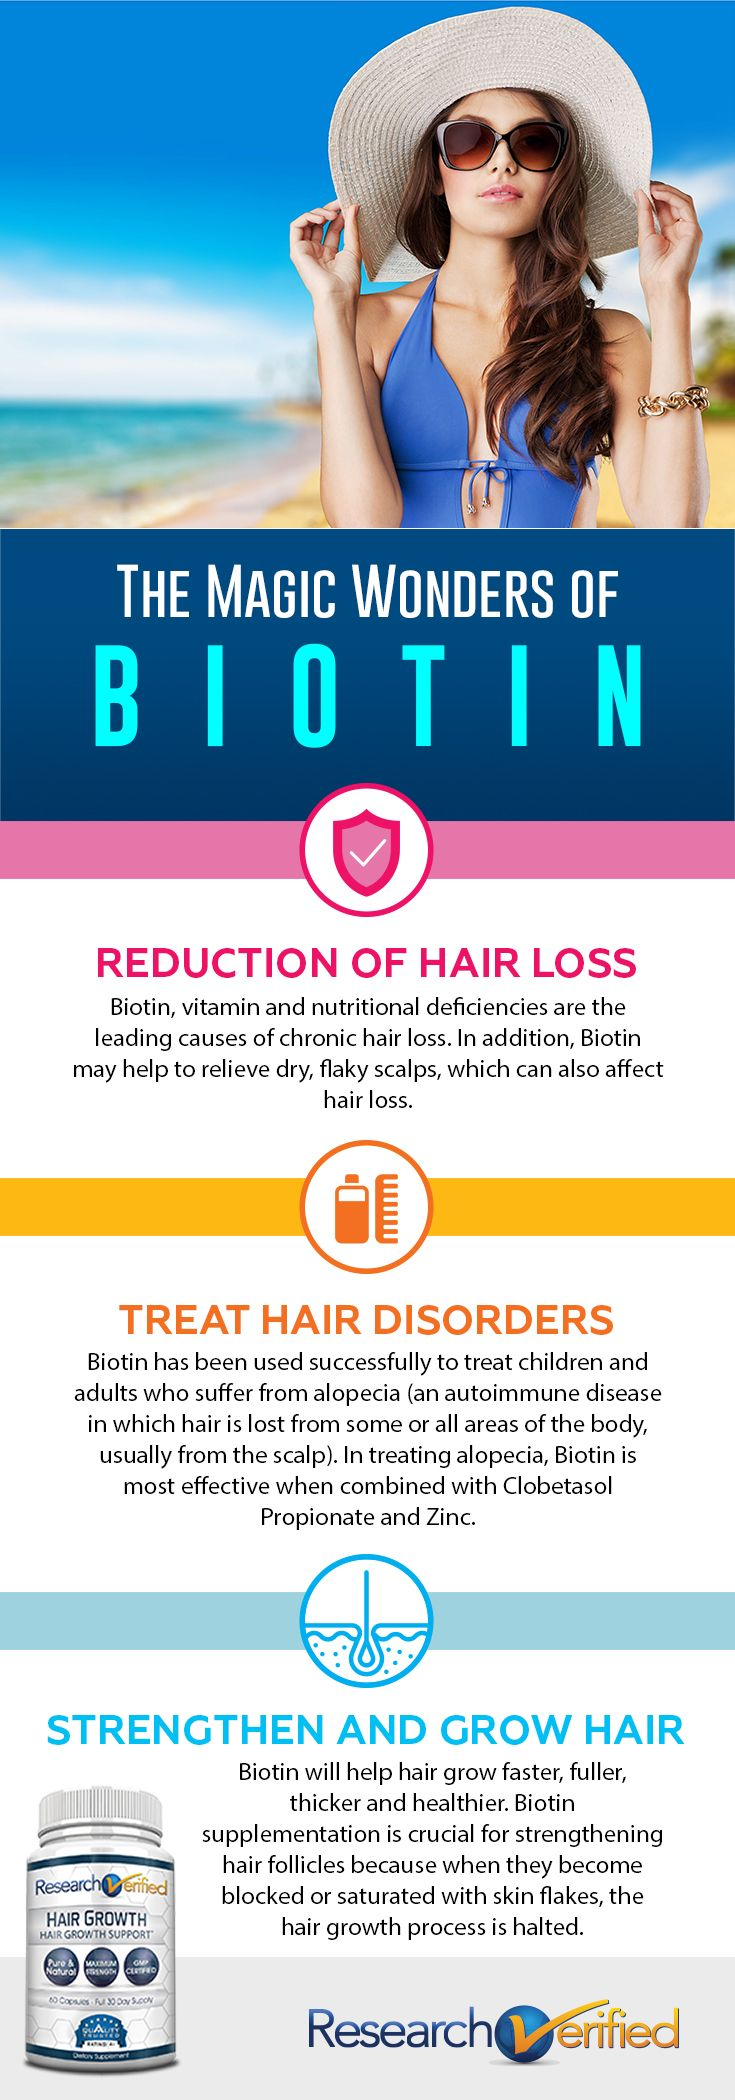 ON SALE NOW Get your hair in the best condition this summer with our popular Hair Growth product packed with the highest quality of Biotin and other essential ingredients that will maintain healthy hair while preventing hair loss.